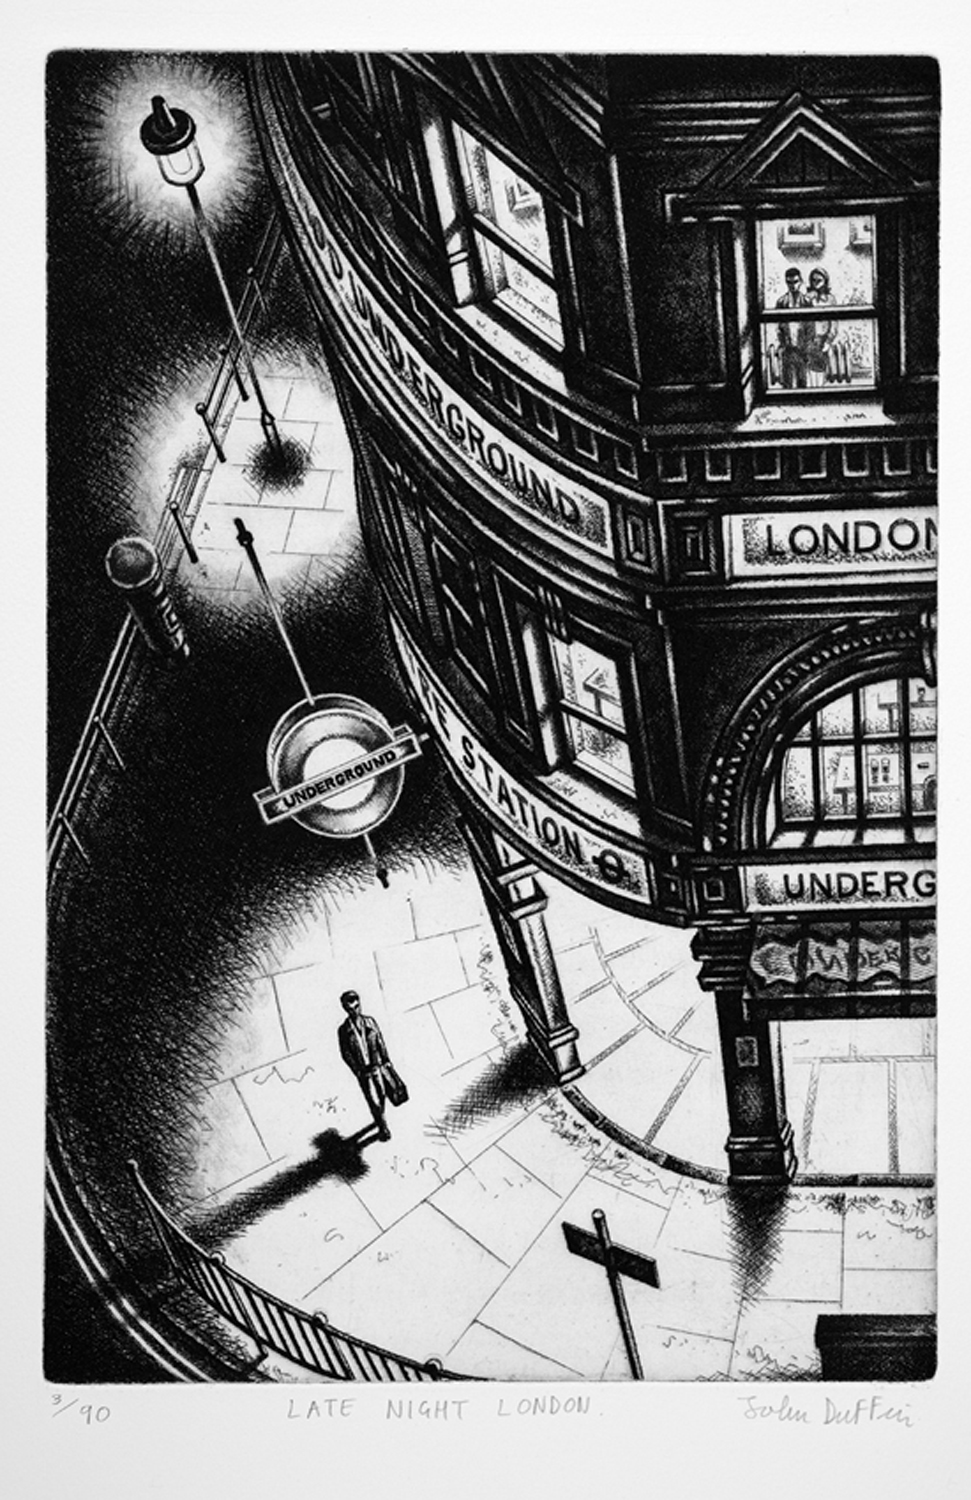 Late Night London etching 25 x 37 cm £195 (unframed)